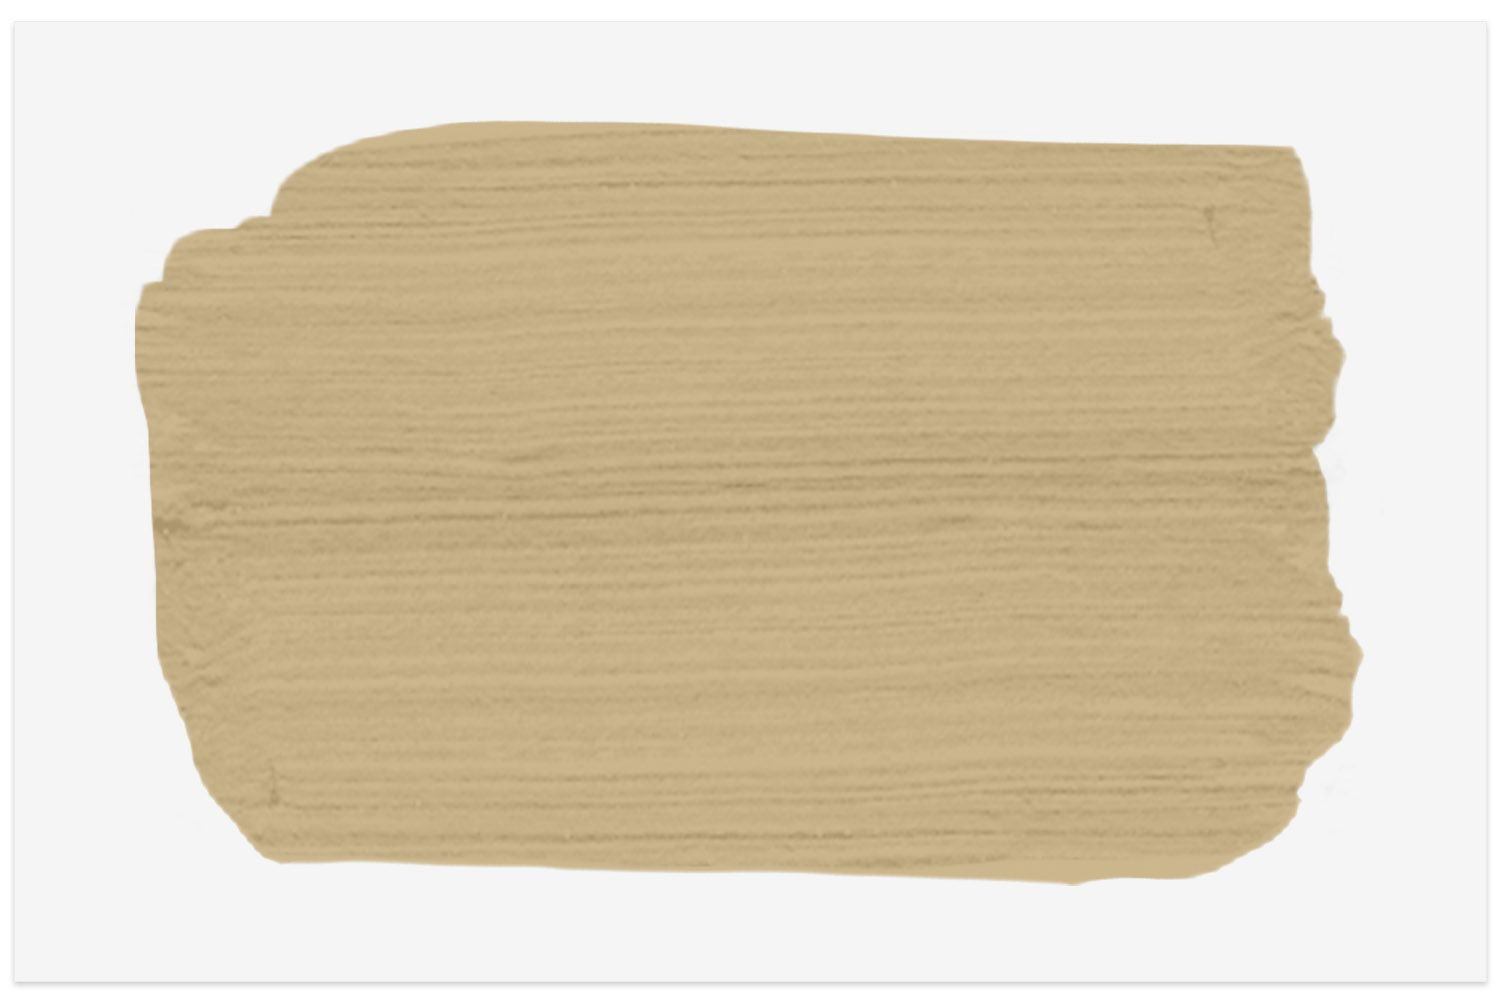 Shelburne Buff paint swatch from Benjamin Moore